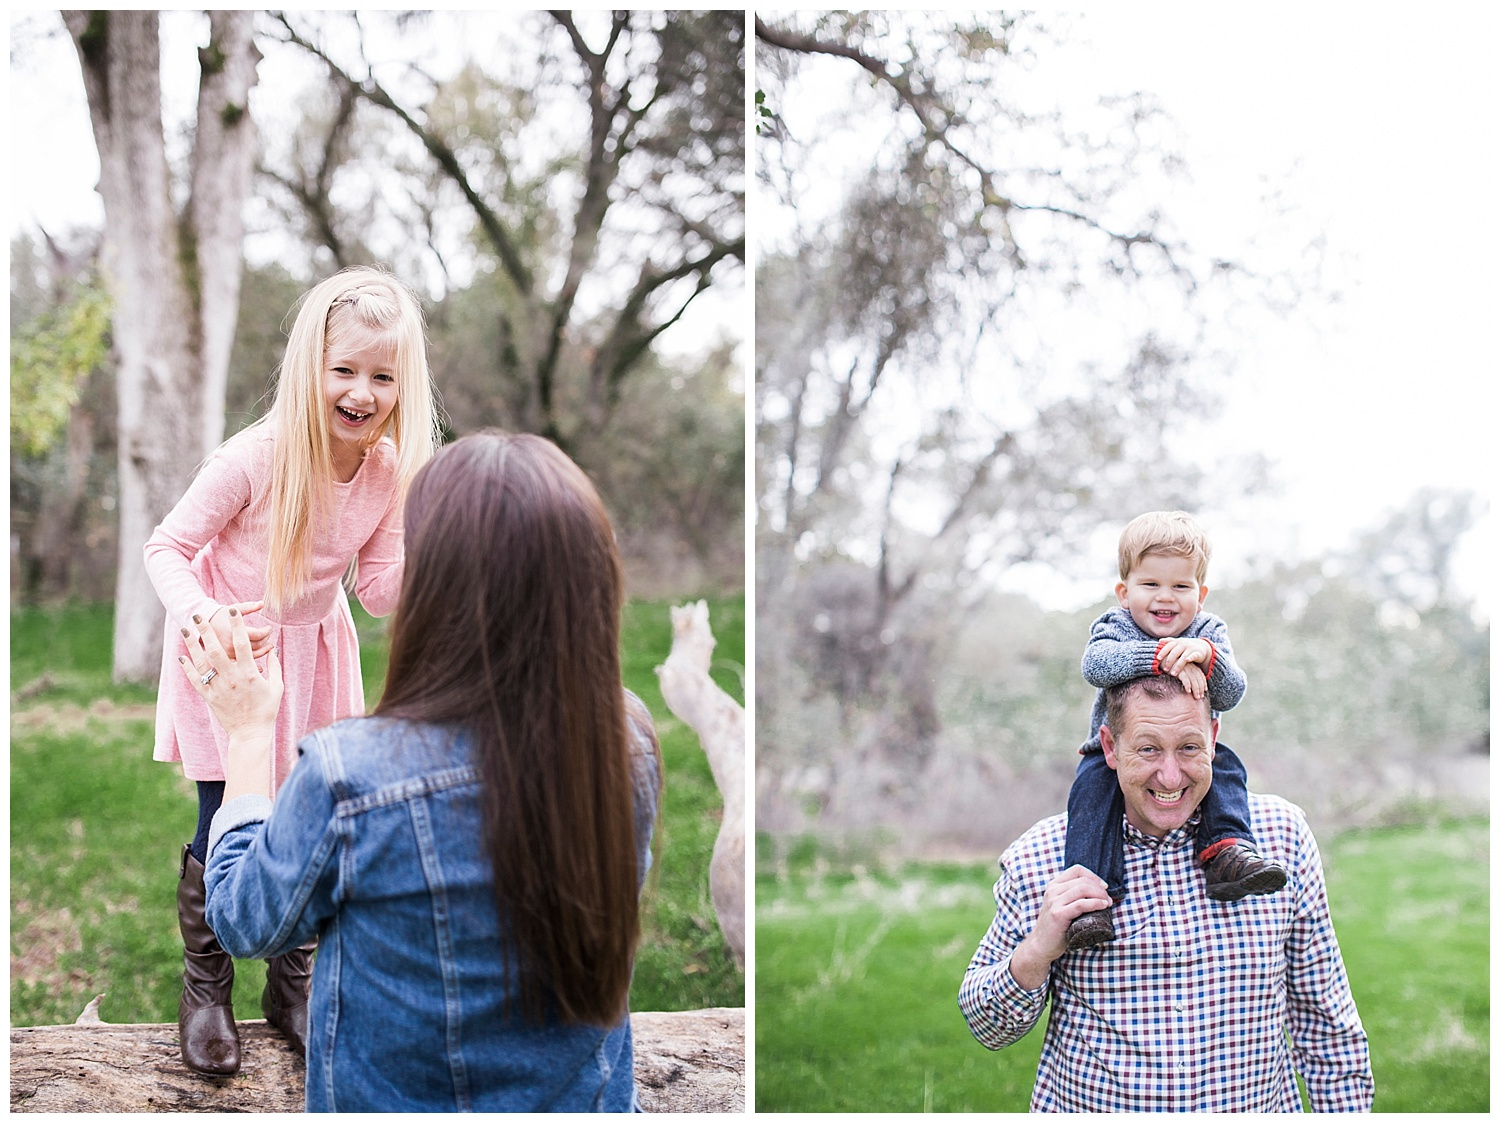 Nicole Quiroz Photography - Sacramento Family Photographer